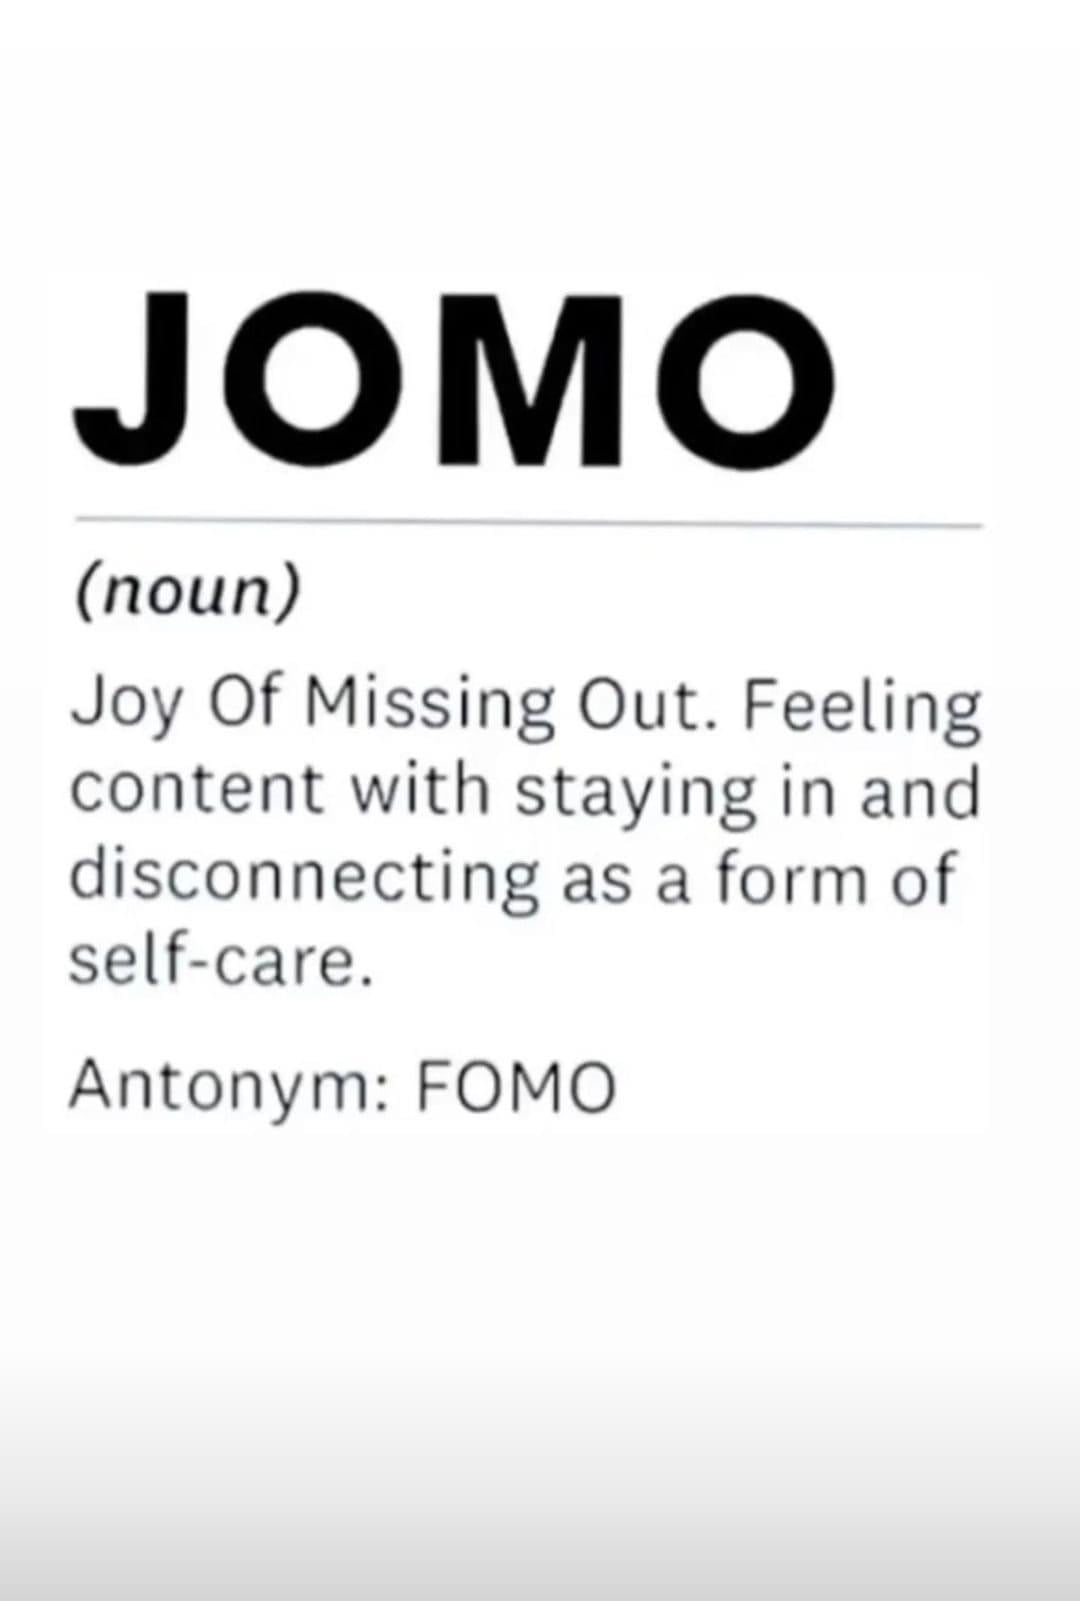 jomo joy of missing out meme introverts